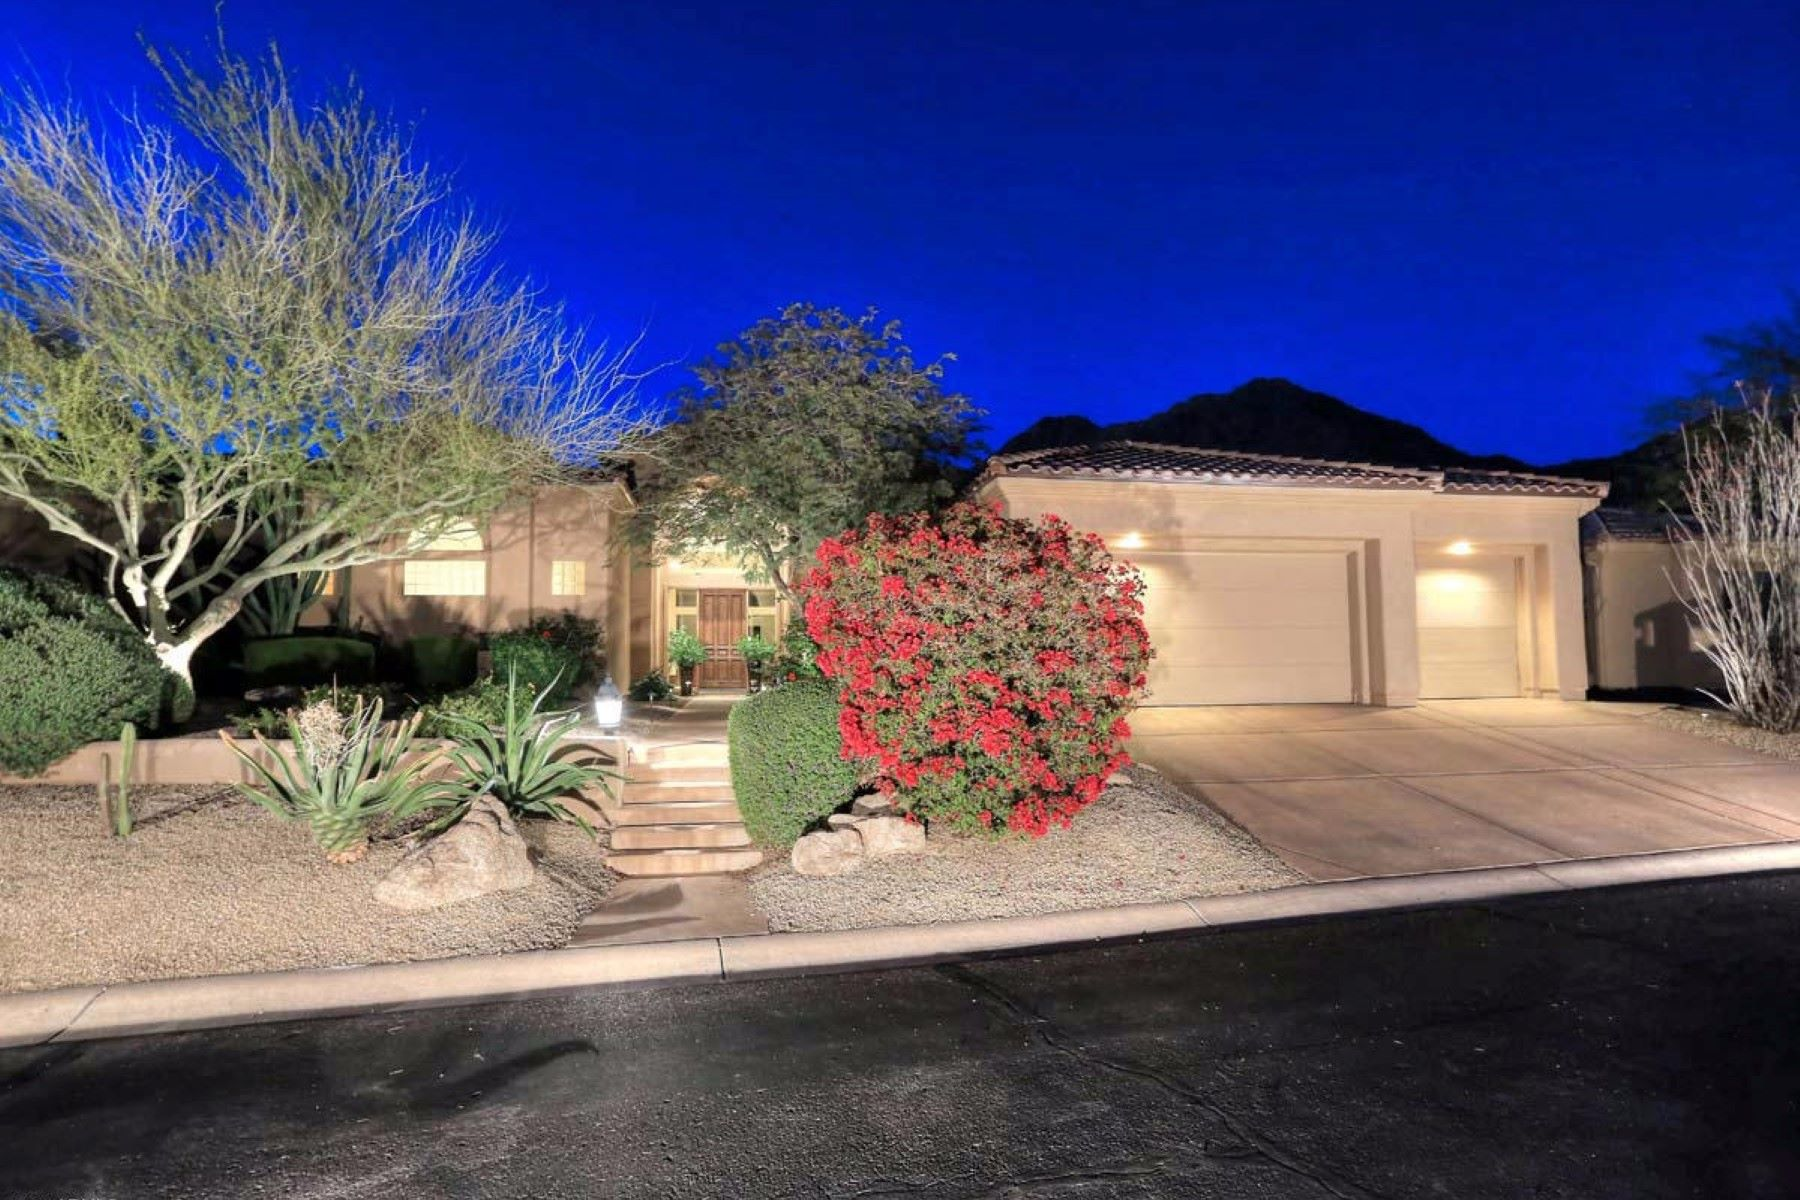 Single Family Home for Sale at Truly exceptional home in Scottsdale Mountain 13664 E Wetherfield Rd Scottsdale, Arizona, 85259 United States